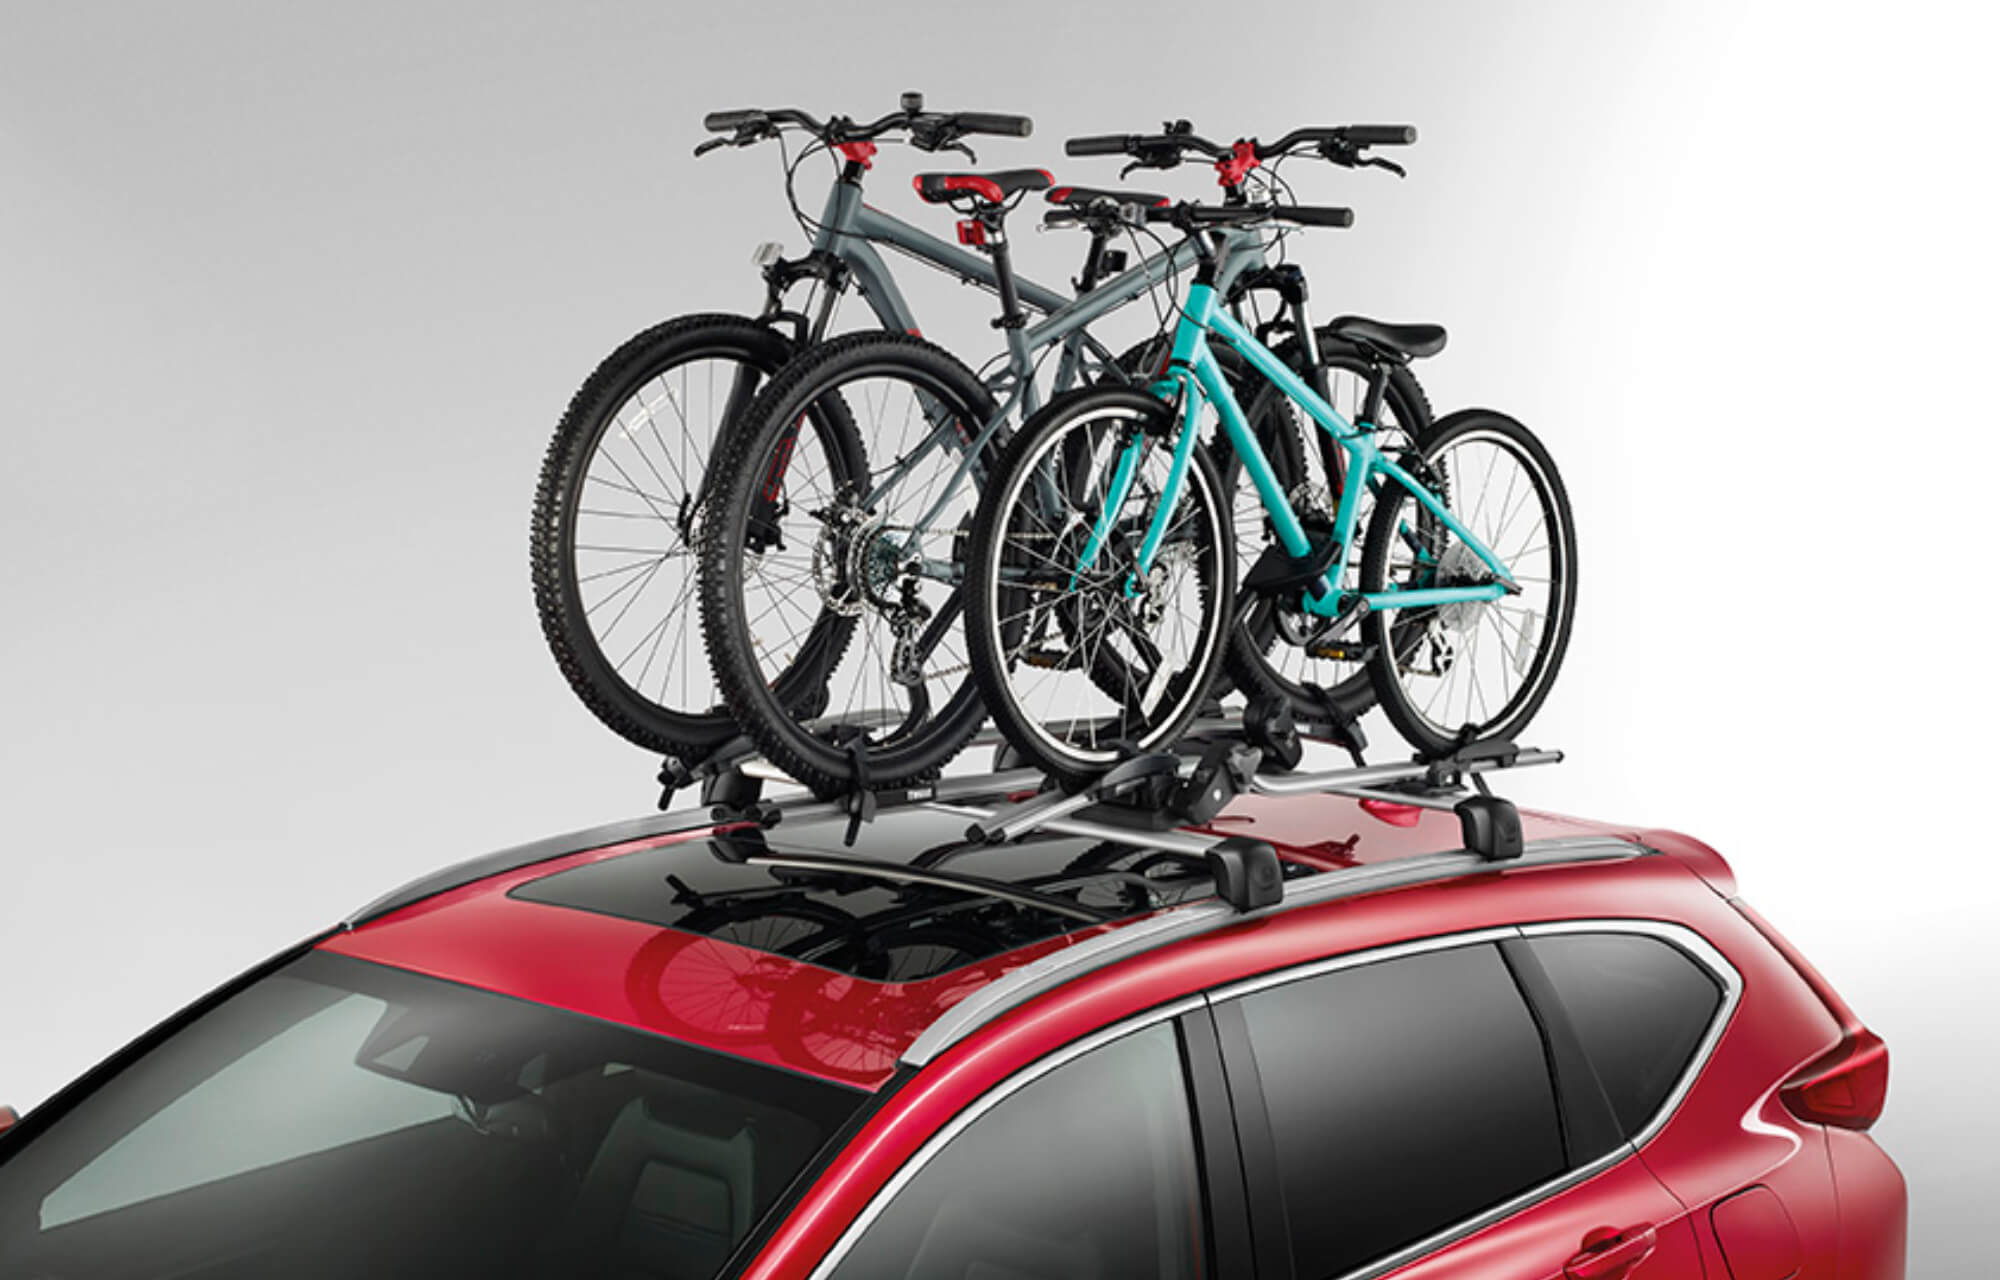 Thule Roof Bicycle Rack - Expert 298